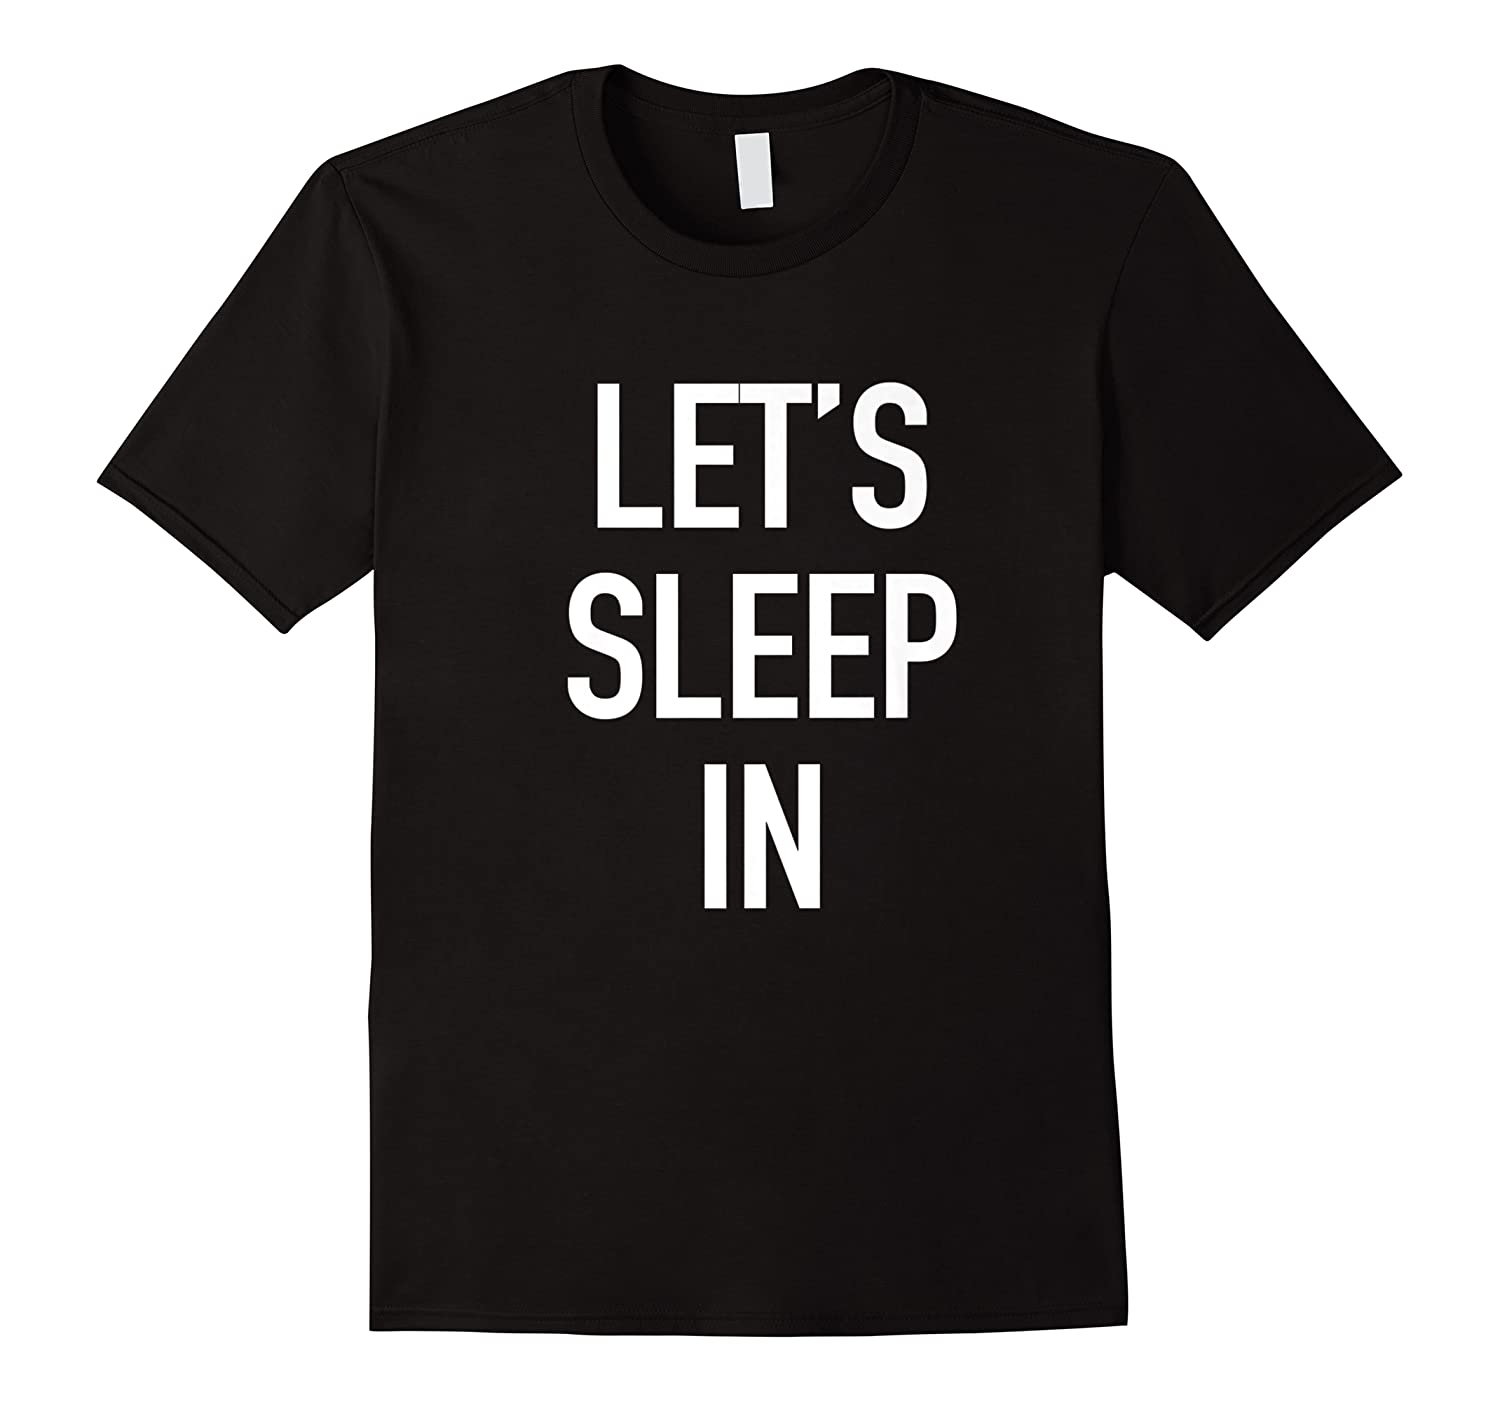 Lets Sleep In - Funny Lazy Day Pajama Quote T-shirt